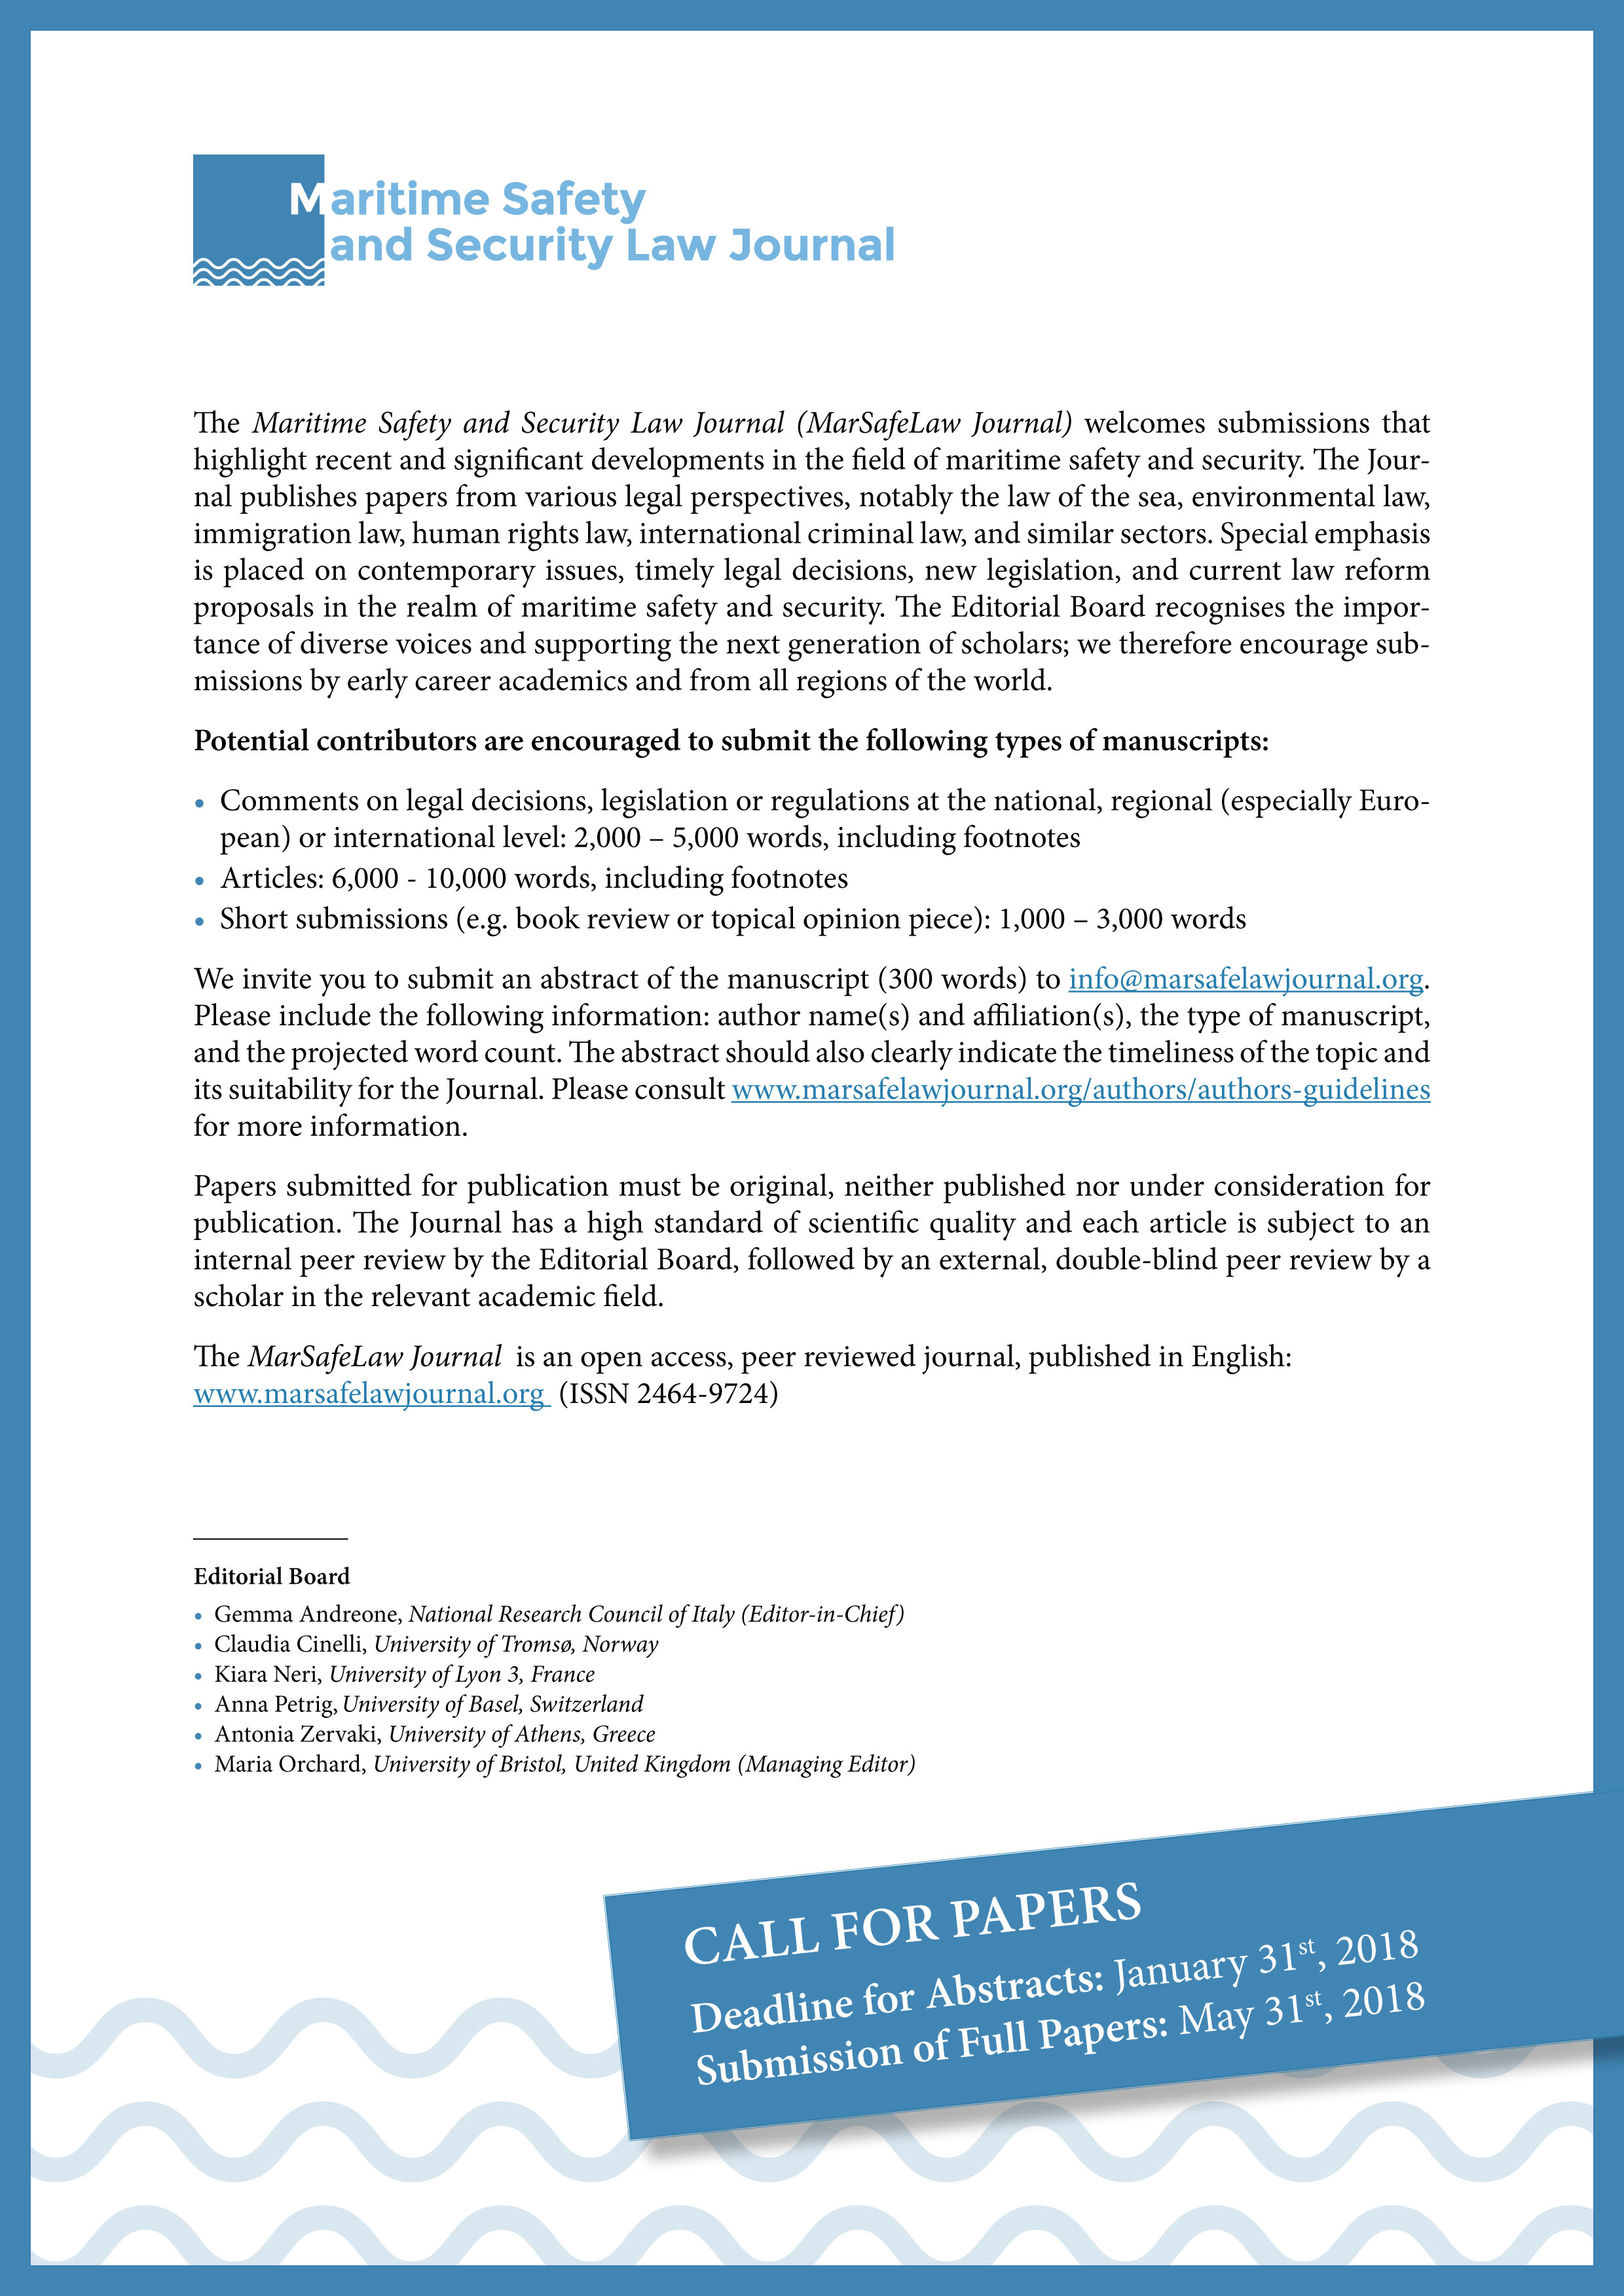 Call for papers. MarSafeLaw Journal. Issue n. 5. Deadline: 31 January 2018